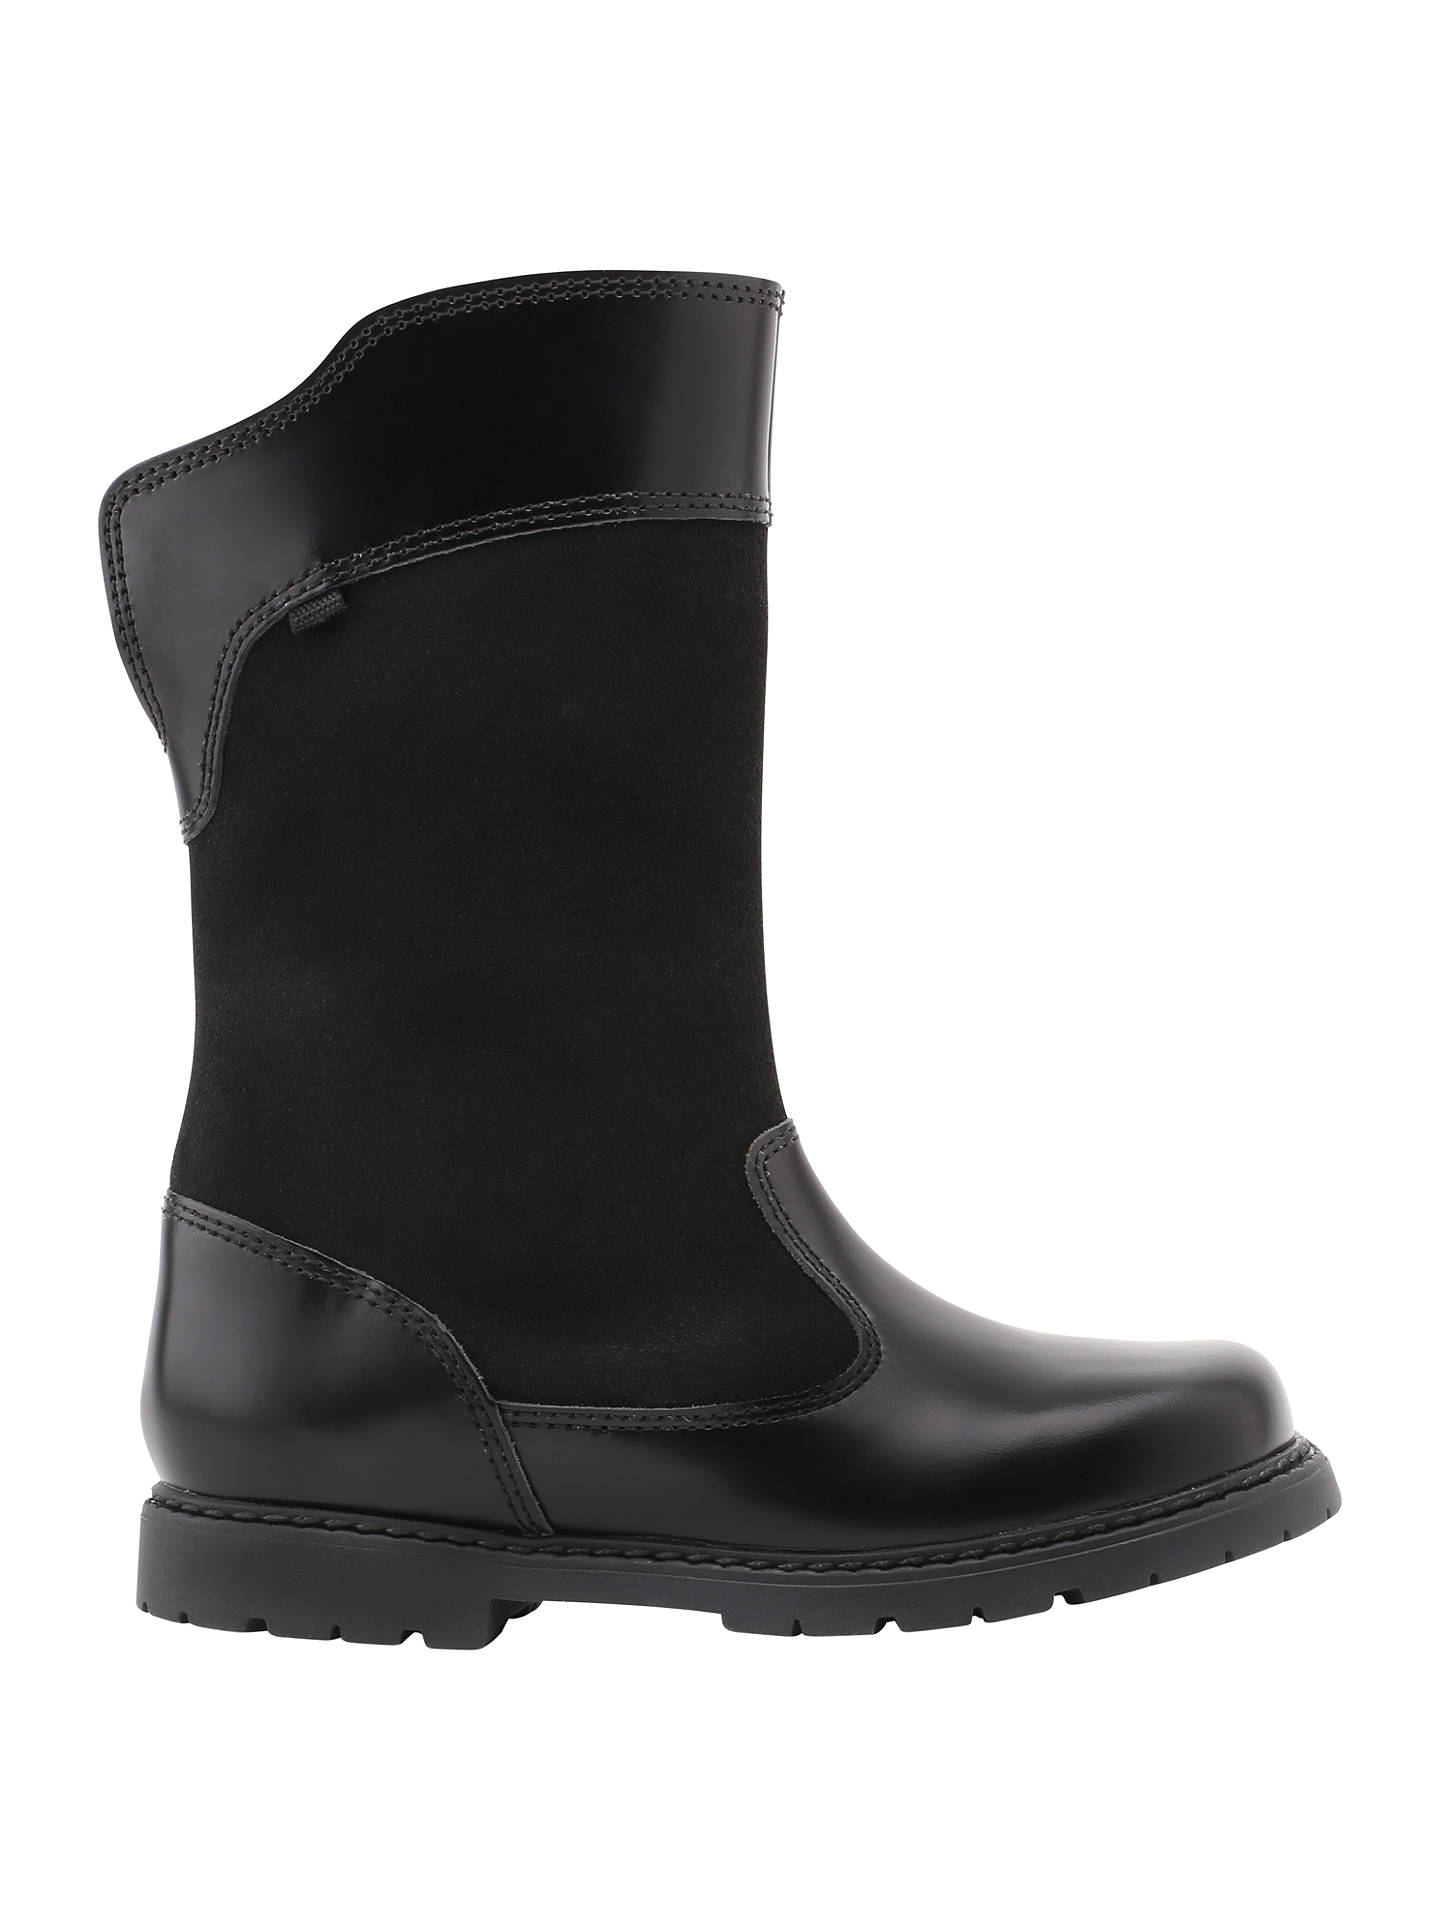 BuyStart-Rite Pre School Parade Boots, Black, 8F Jnr Online at johnlewis.com